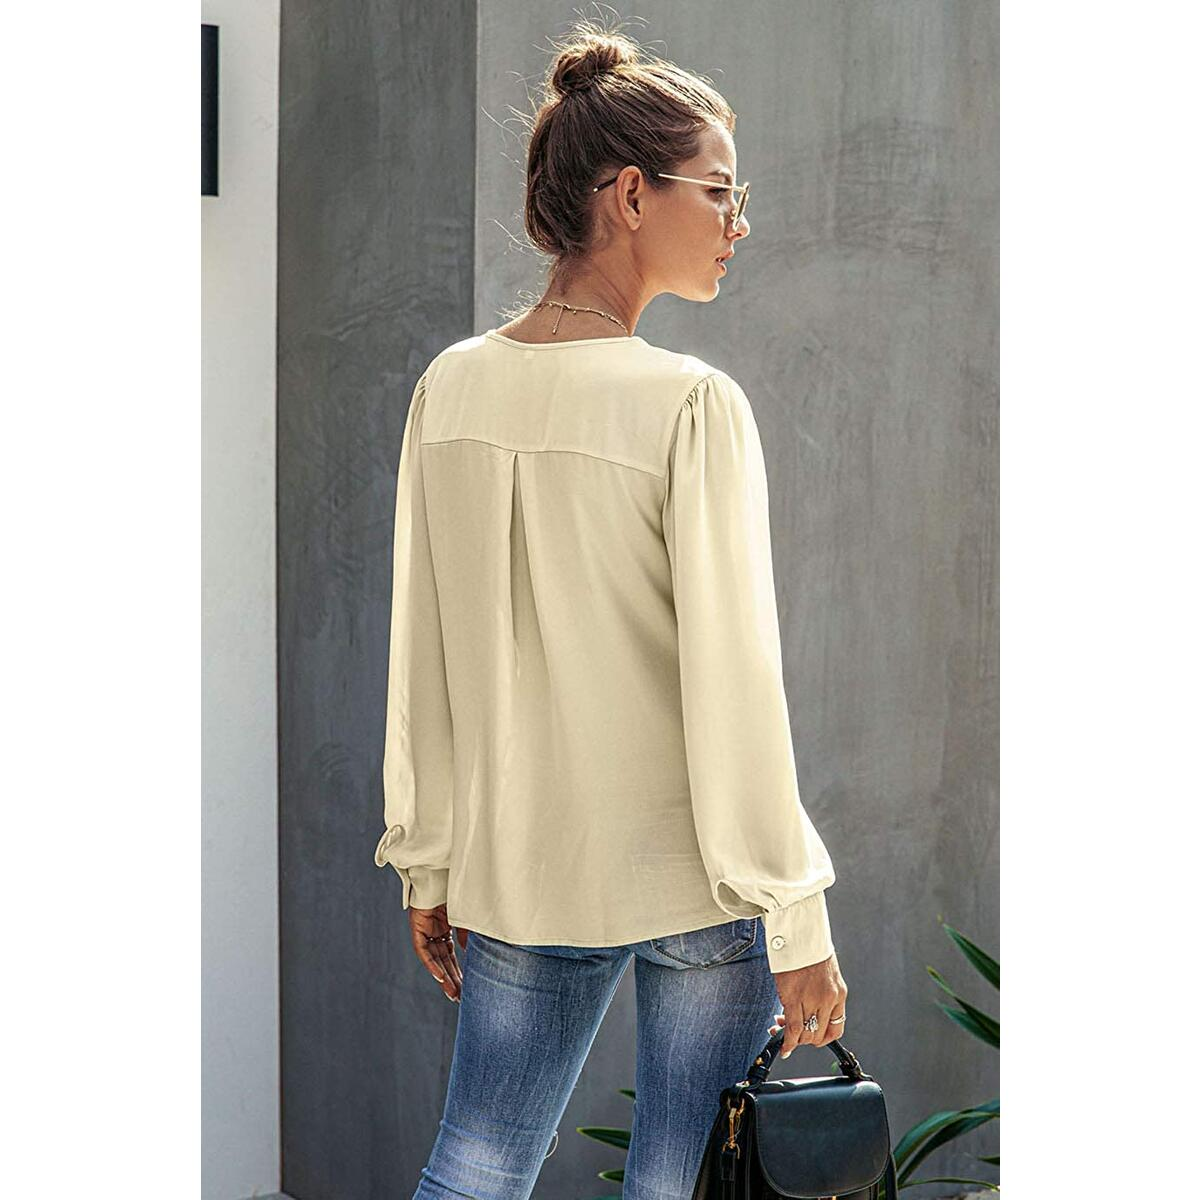 Alelly Women's Solid Color Elegant Tops Trumpet Long Sleeve Blouse Loose Tunic V Neck Pleat Shirt All